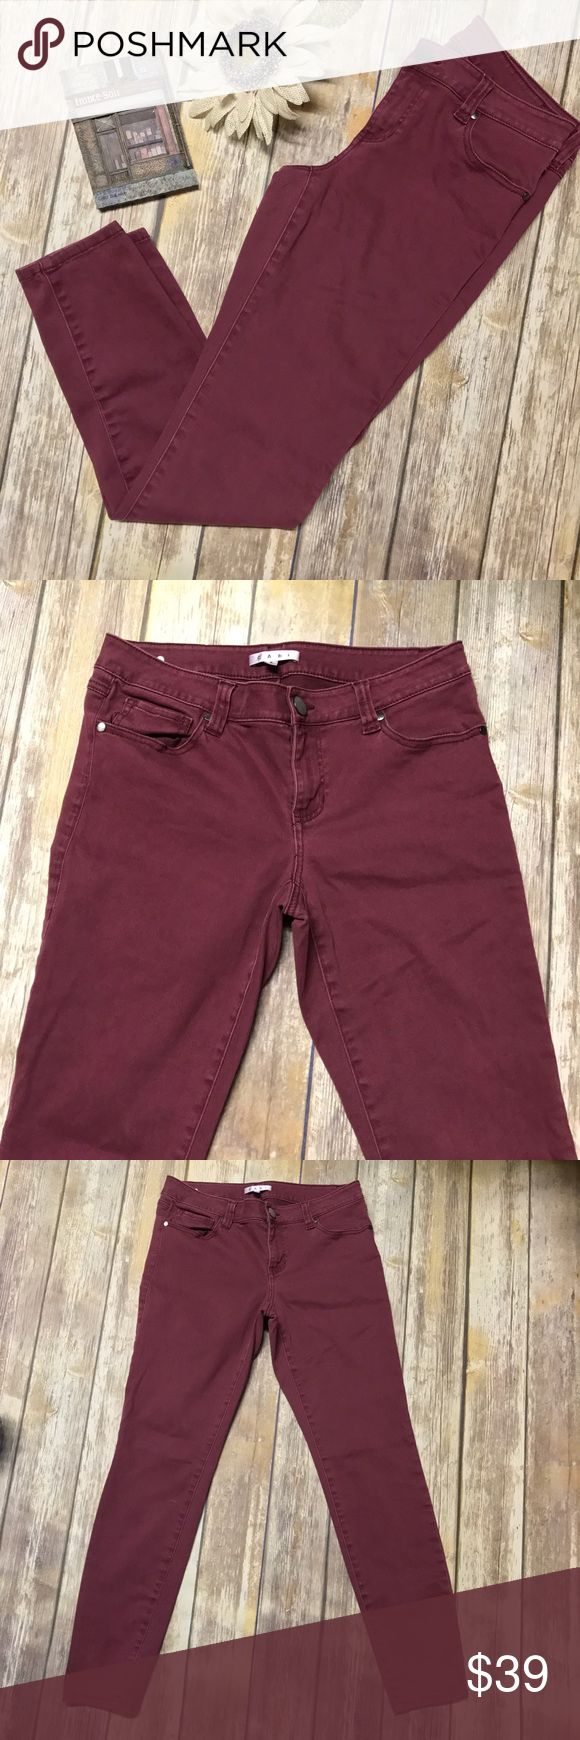 Cabi Bordeaux Wash Skinny Jeans GUC. A cotton blend softens these flattering skinny jeans, rendered in a sophisticated hue.  Super cute paired with the Cabi Ginger Top in my closet! Merlot/Burgandy in color. 90% cotton, 8% elasterell-p,2% spandex. Machine washed, laid flat to dry. 💰Reasonable offers considered. Photos may not be used without permission. All rights reserved. ⬇️6/19 CAbi Jeans Skinny